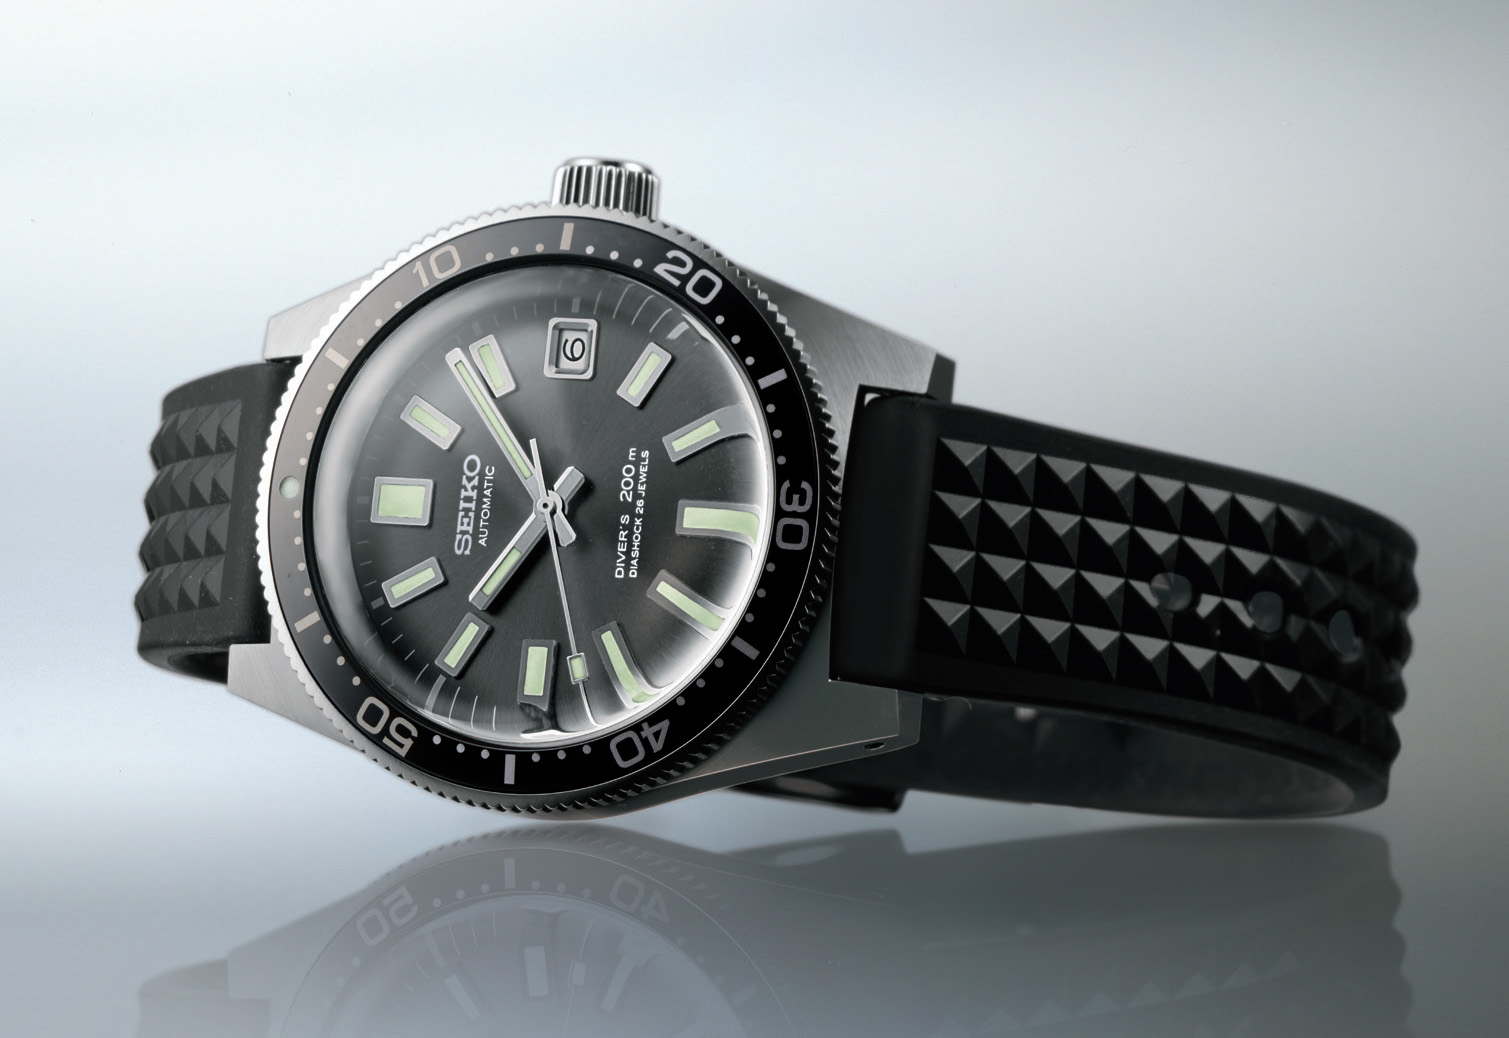 Seiko's first diver's watch from 1965 is re-invented in the Prospex collection. SLA017